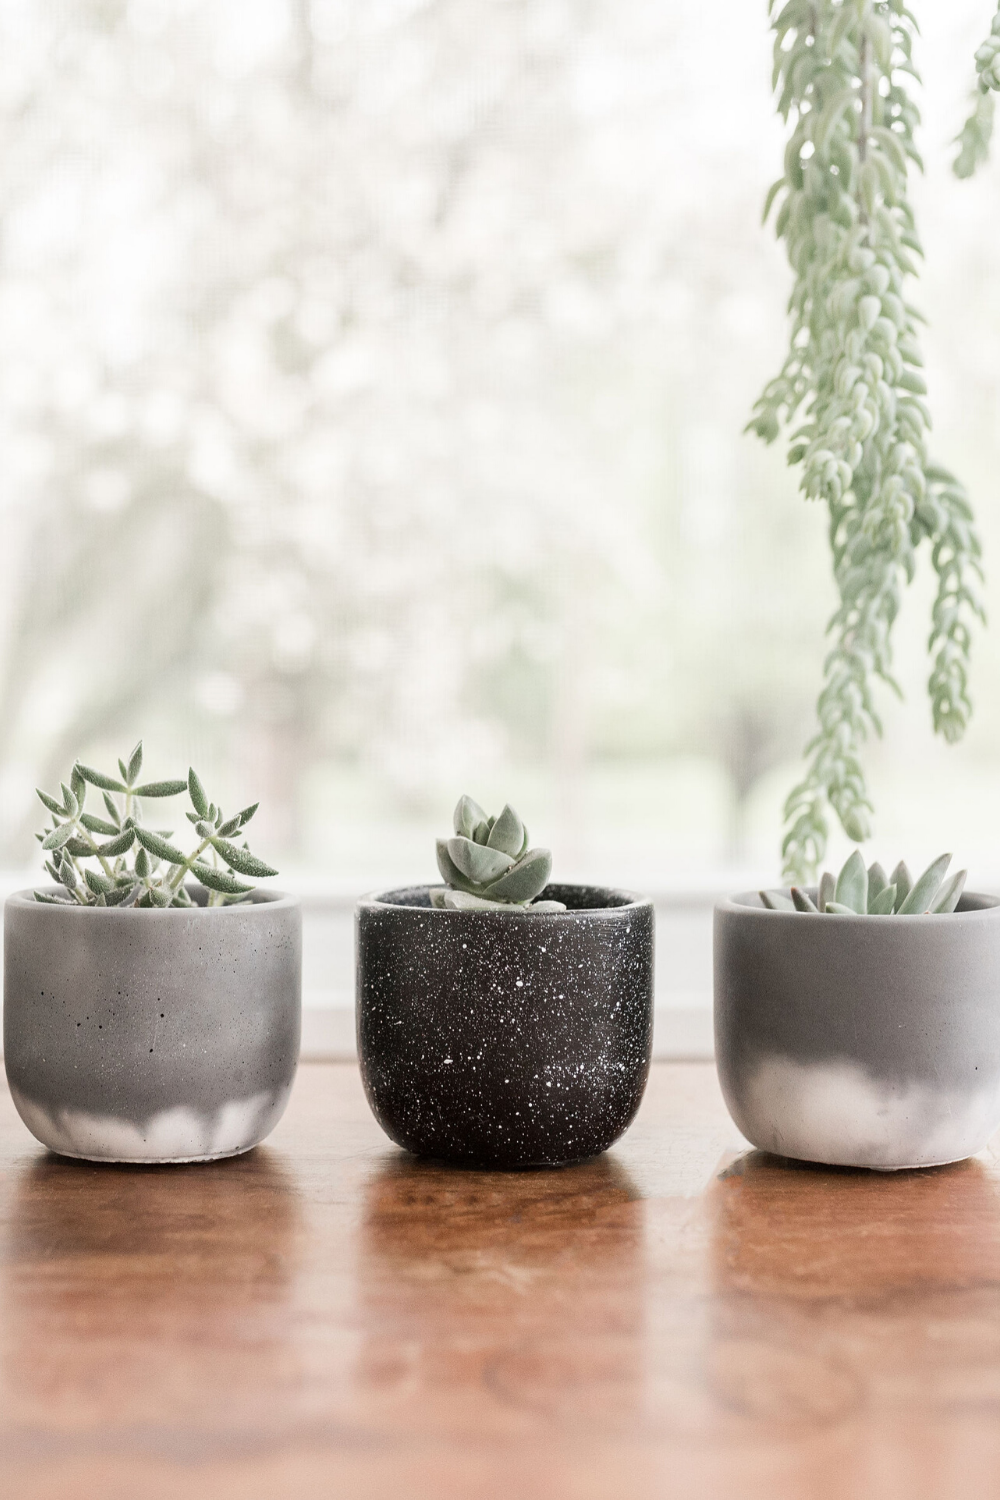 Set Of 4 Succulent Planters With Drainage Small Pots For Etsy In 2020 Succulent Planter Diy Concrete Planters Concrete Succulent Planters